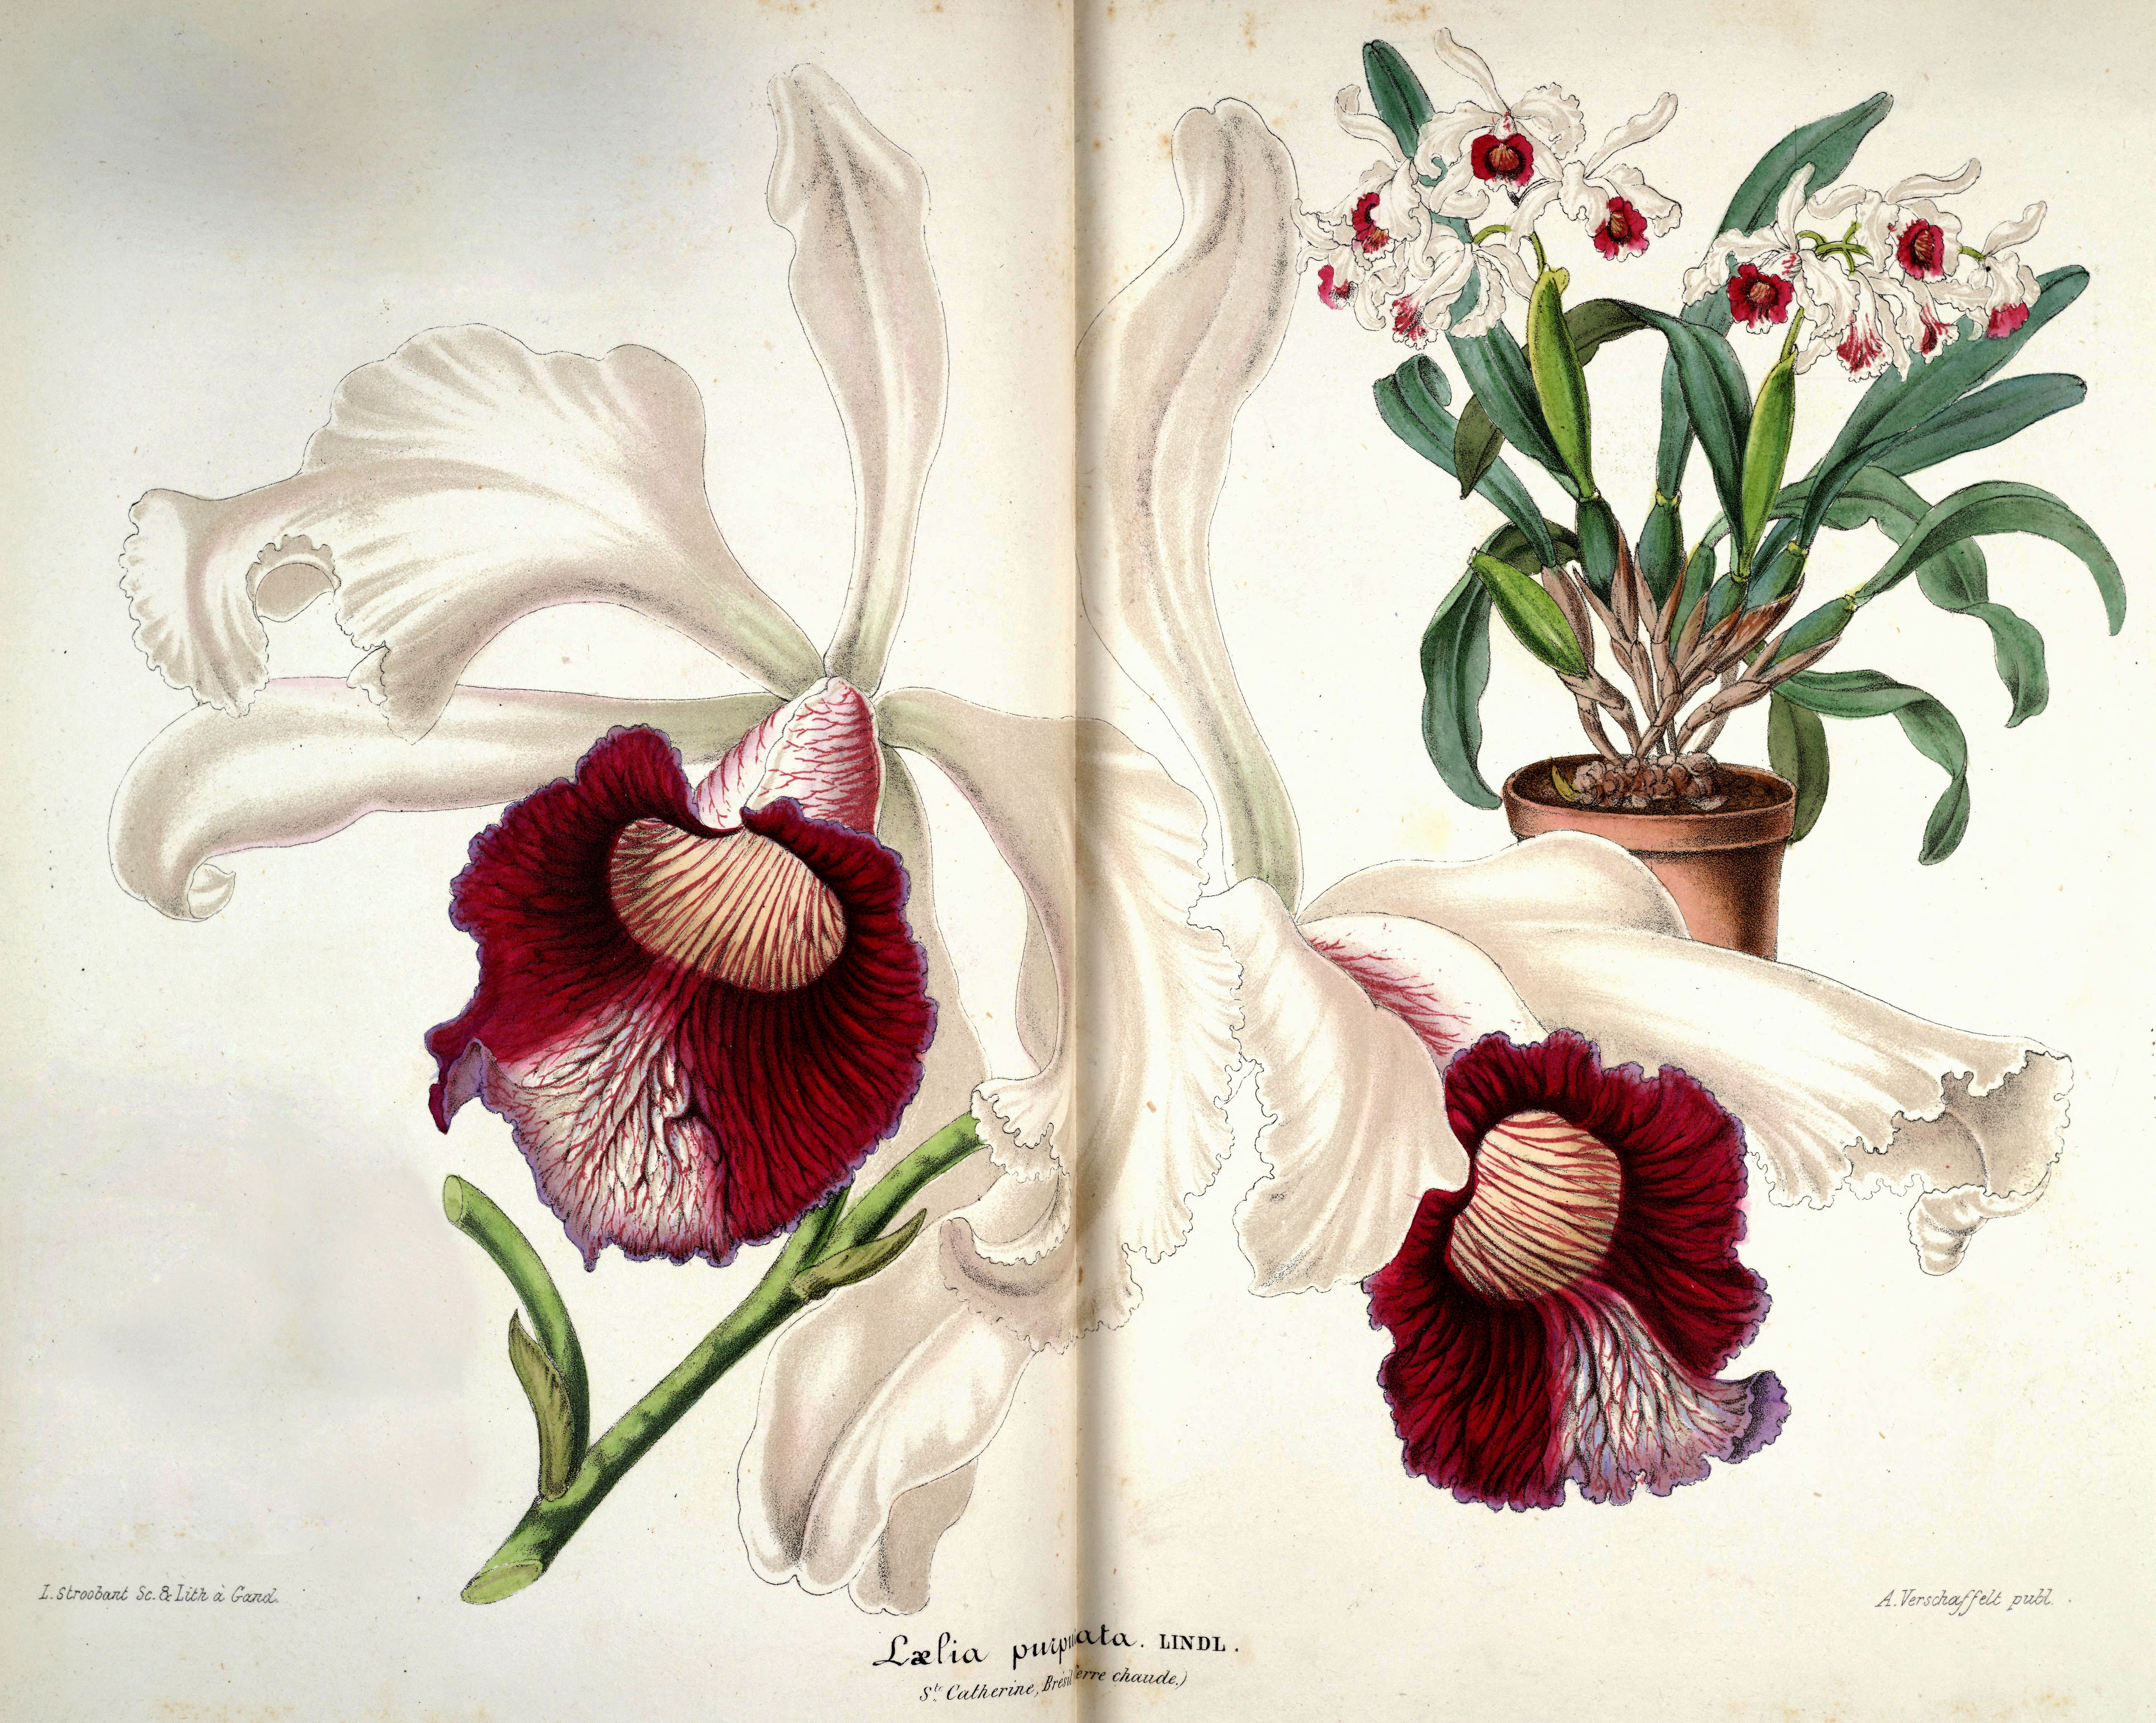 FLOWERS 7: The Orchid